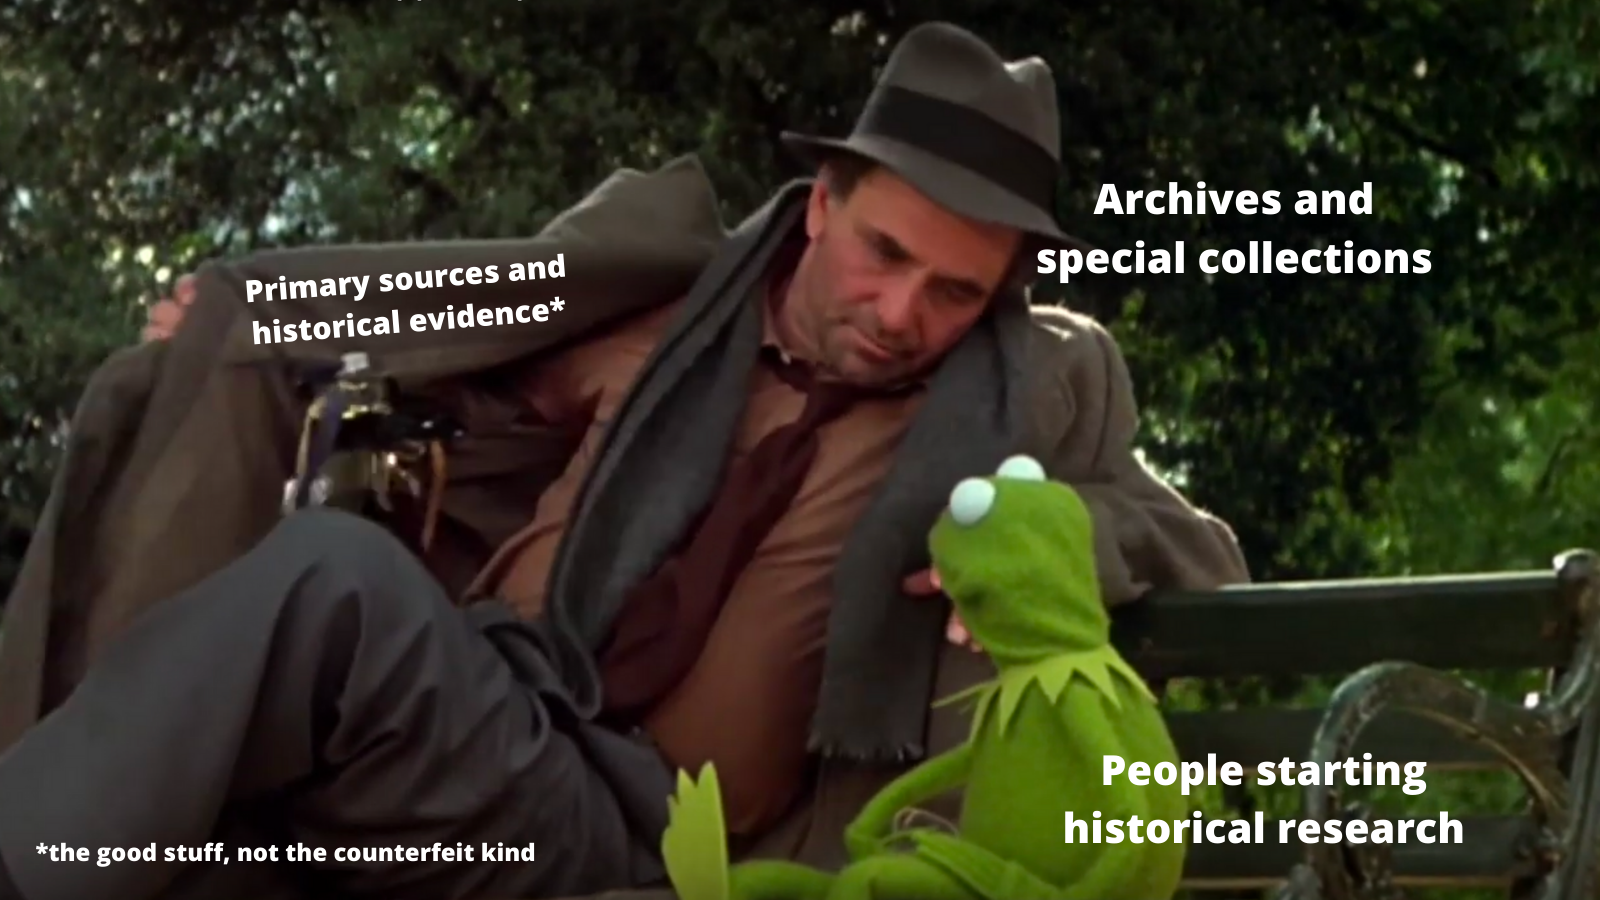 """Peter Falk and Kermit the Frog sit on a park bench. Falk opens a trench coat to reveal a lot of watches. Over Falk: """"Archives and special collections"""" Over Kermit: """"people starting historical research"""" Over the watches: """"Primary sources and historical evidence*"""" Note in bottom left: """"*the good stuff, not the counterfeit kind"""""""